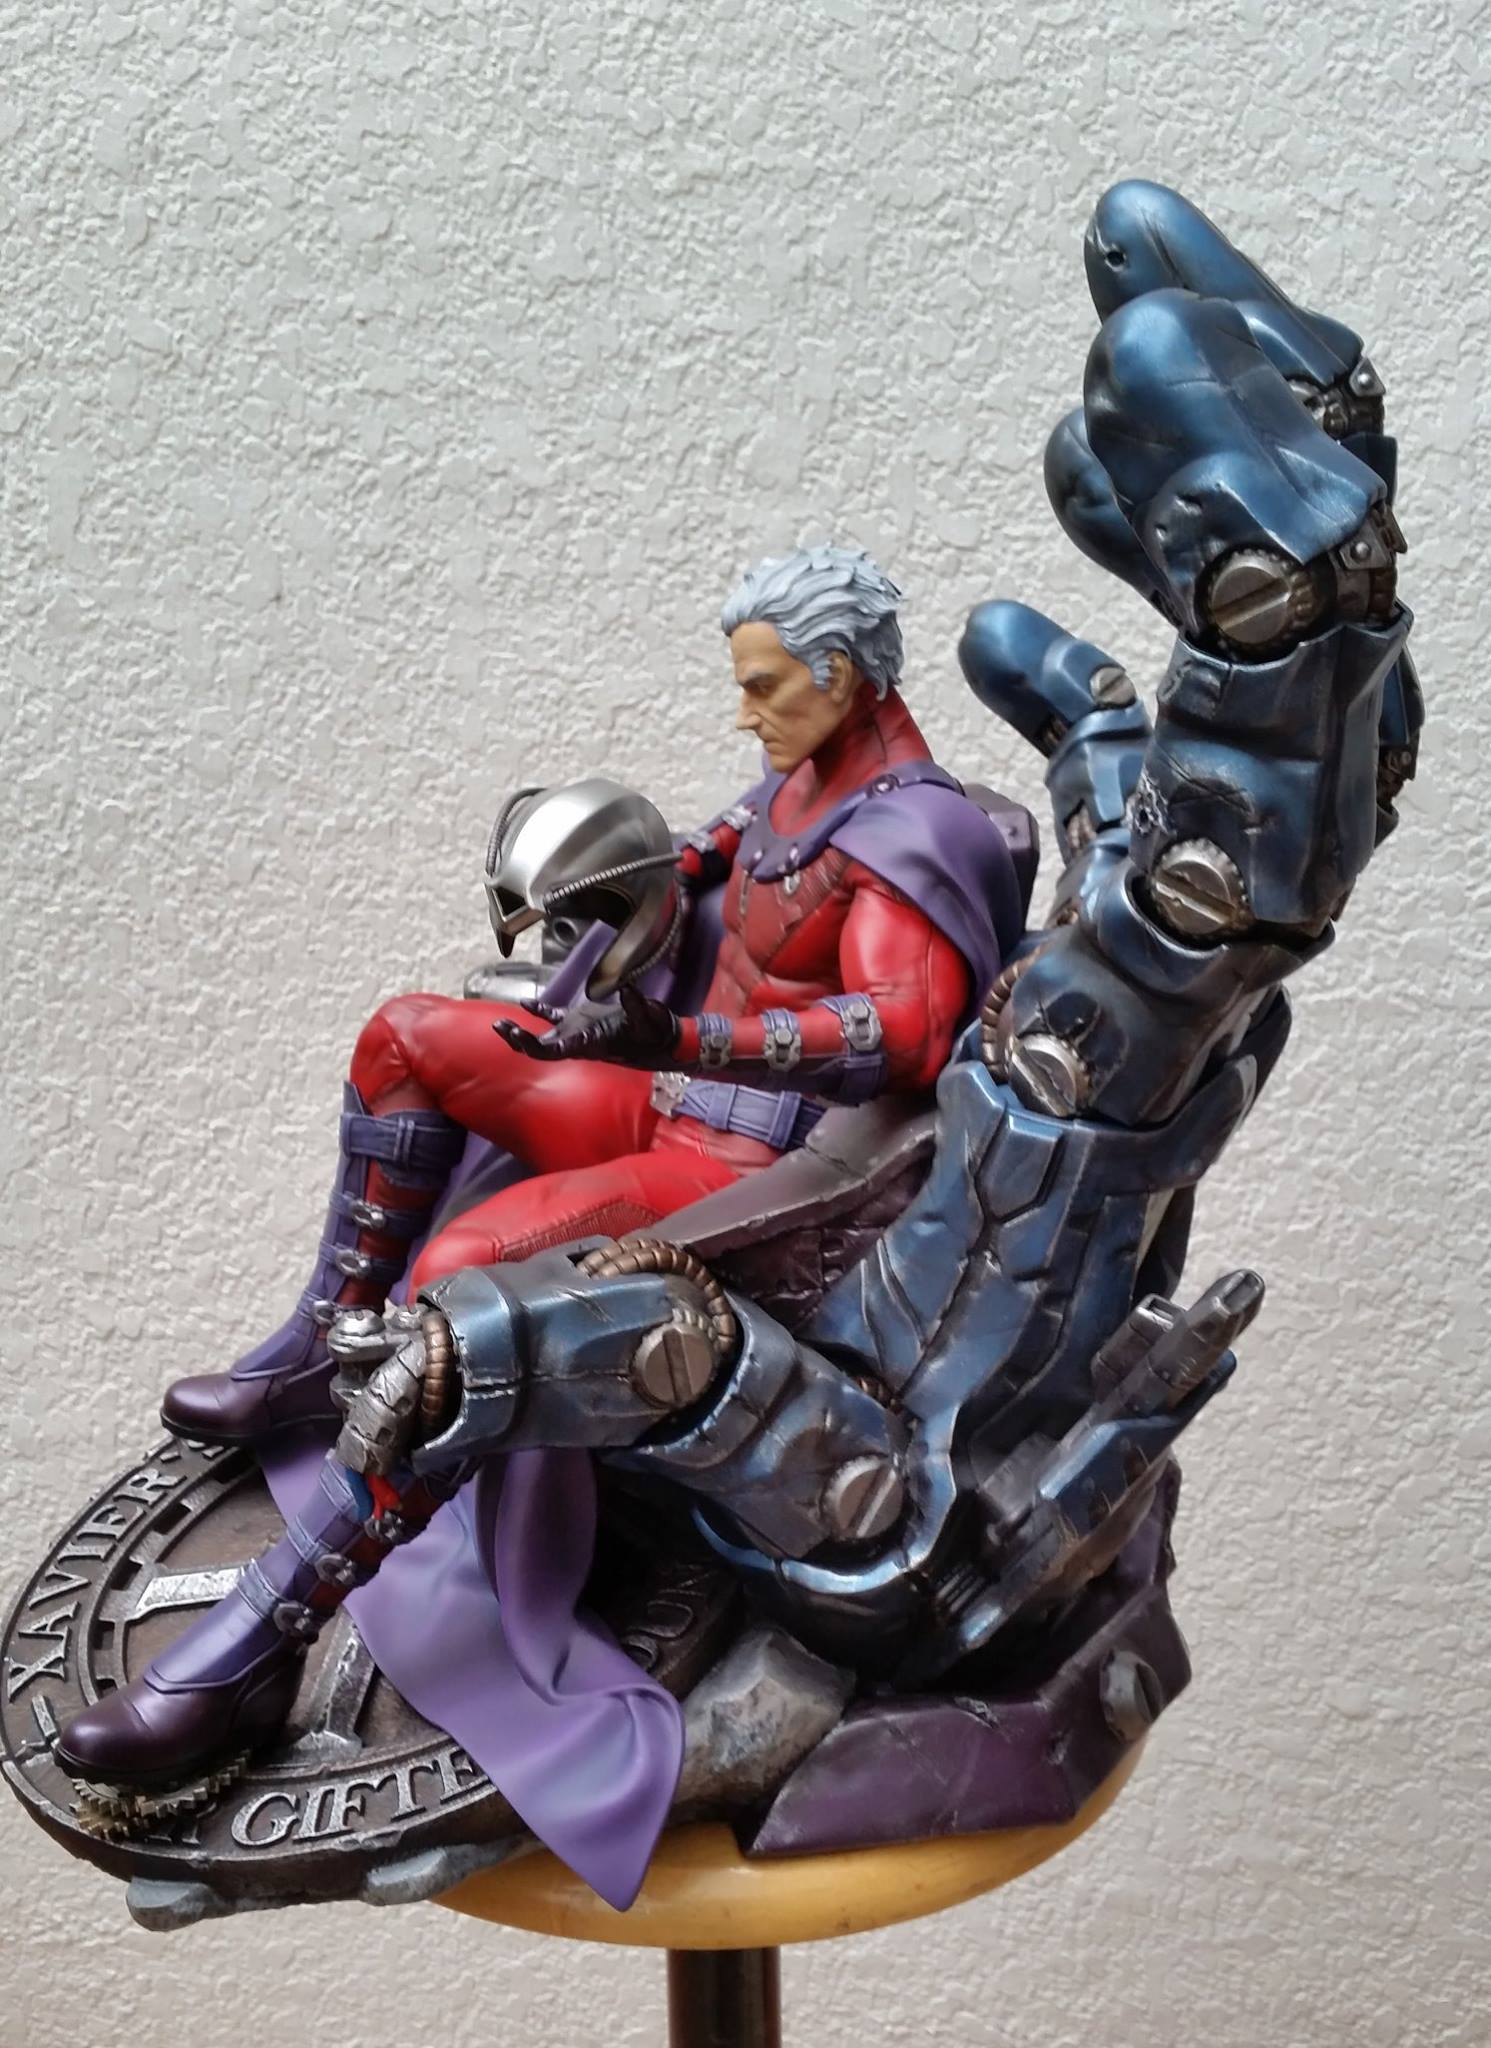 Premium Collectibles : Magneto on Sentinel Throne - Page 5 5020831036884014011596501047303003226882232183529o